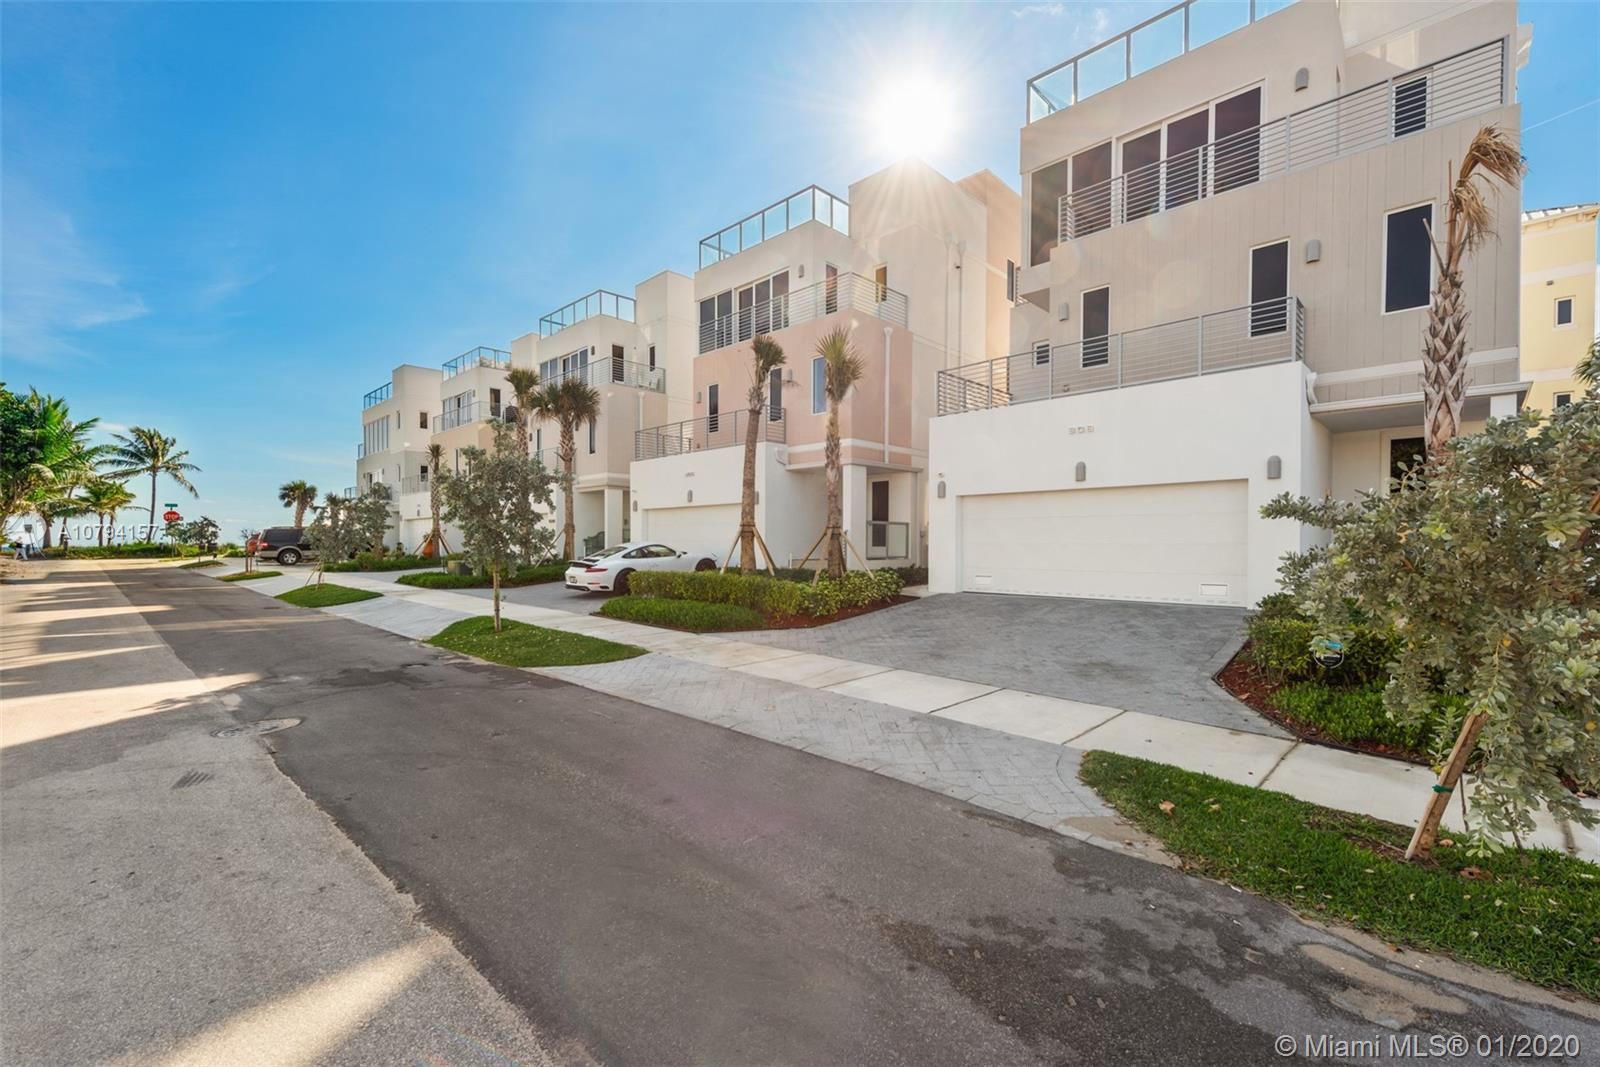 Welcome to paradise. This 3 story, 4 bed 3.5 bath beach home is just steps to the famous Hollywood B